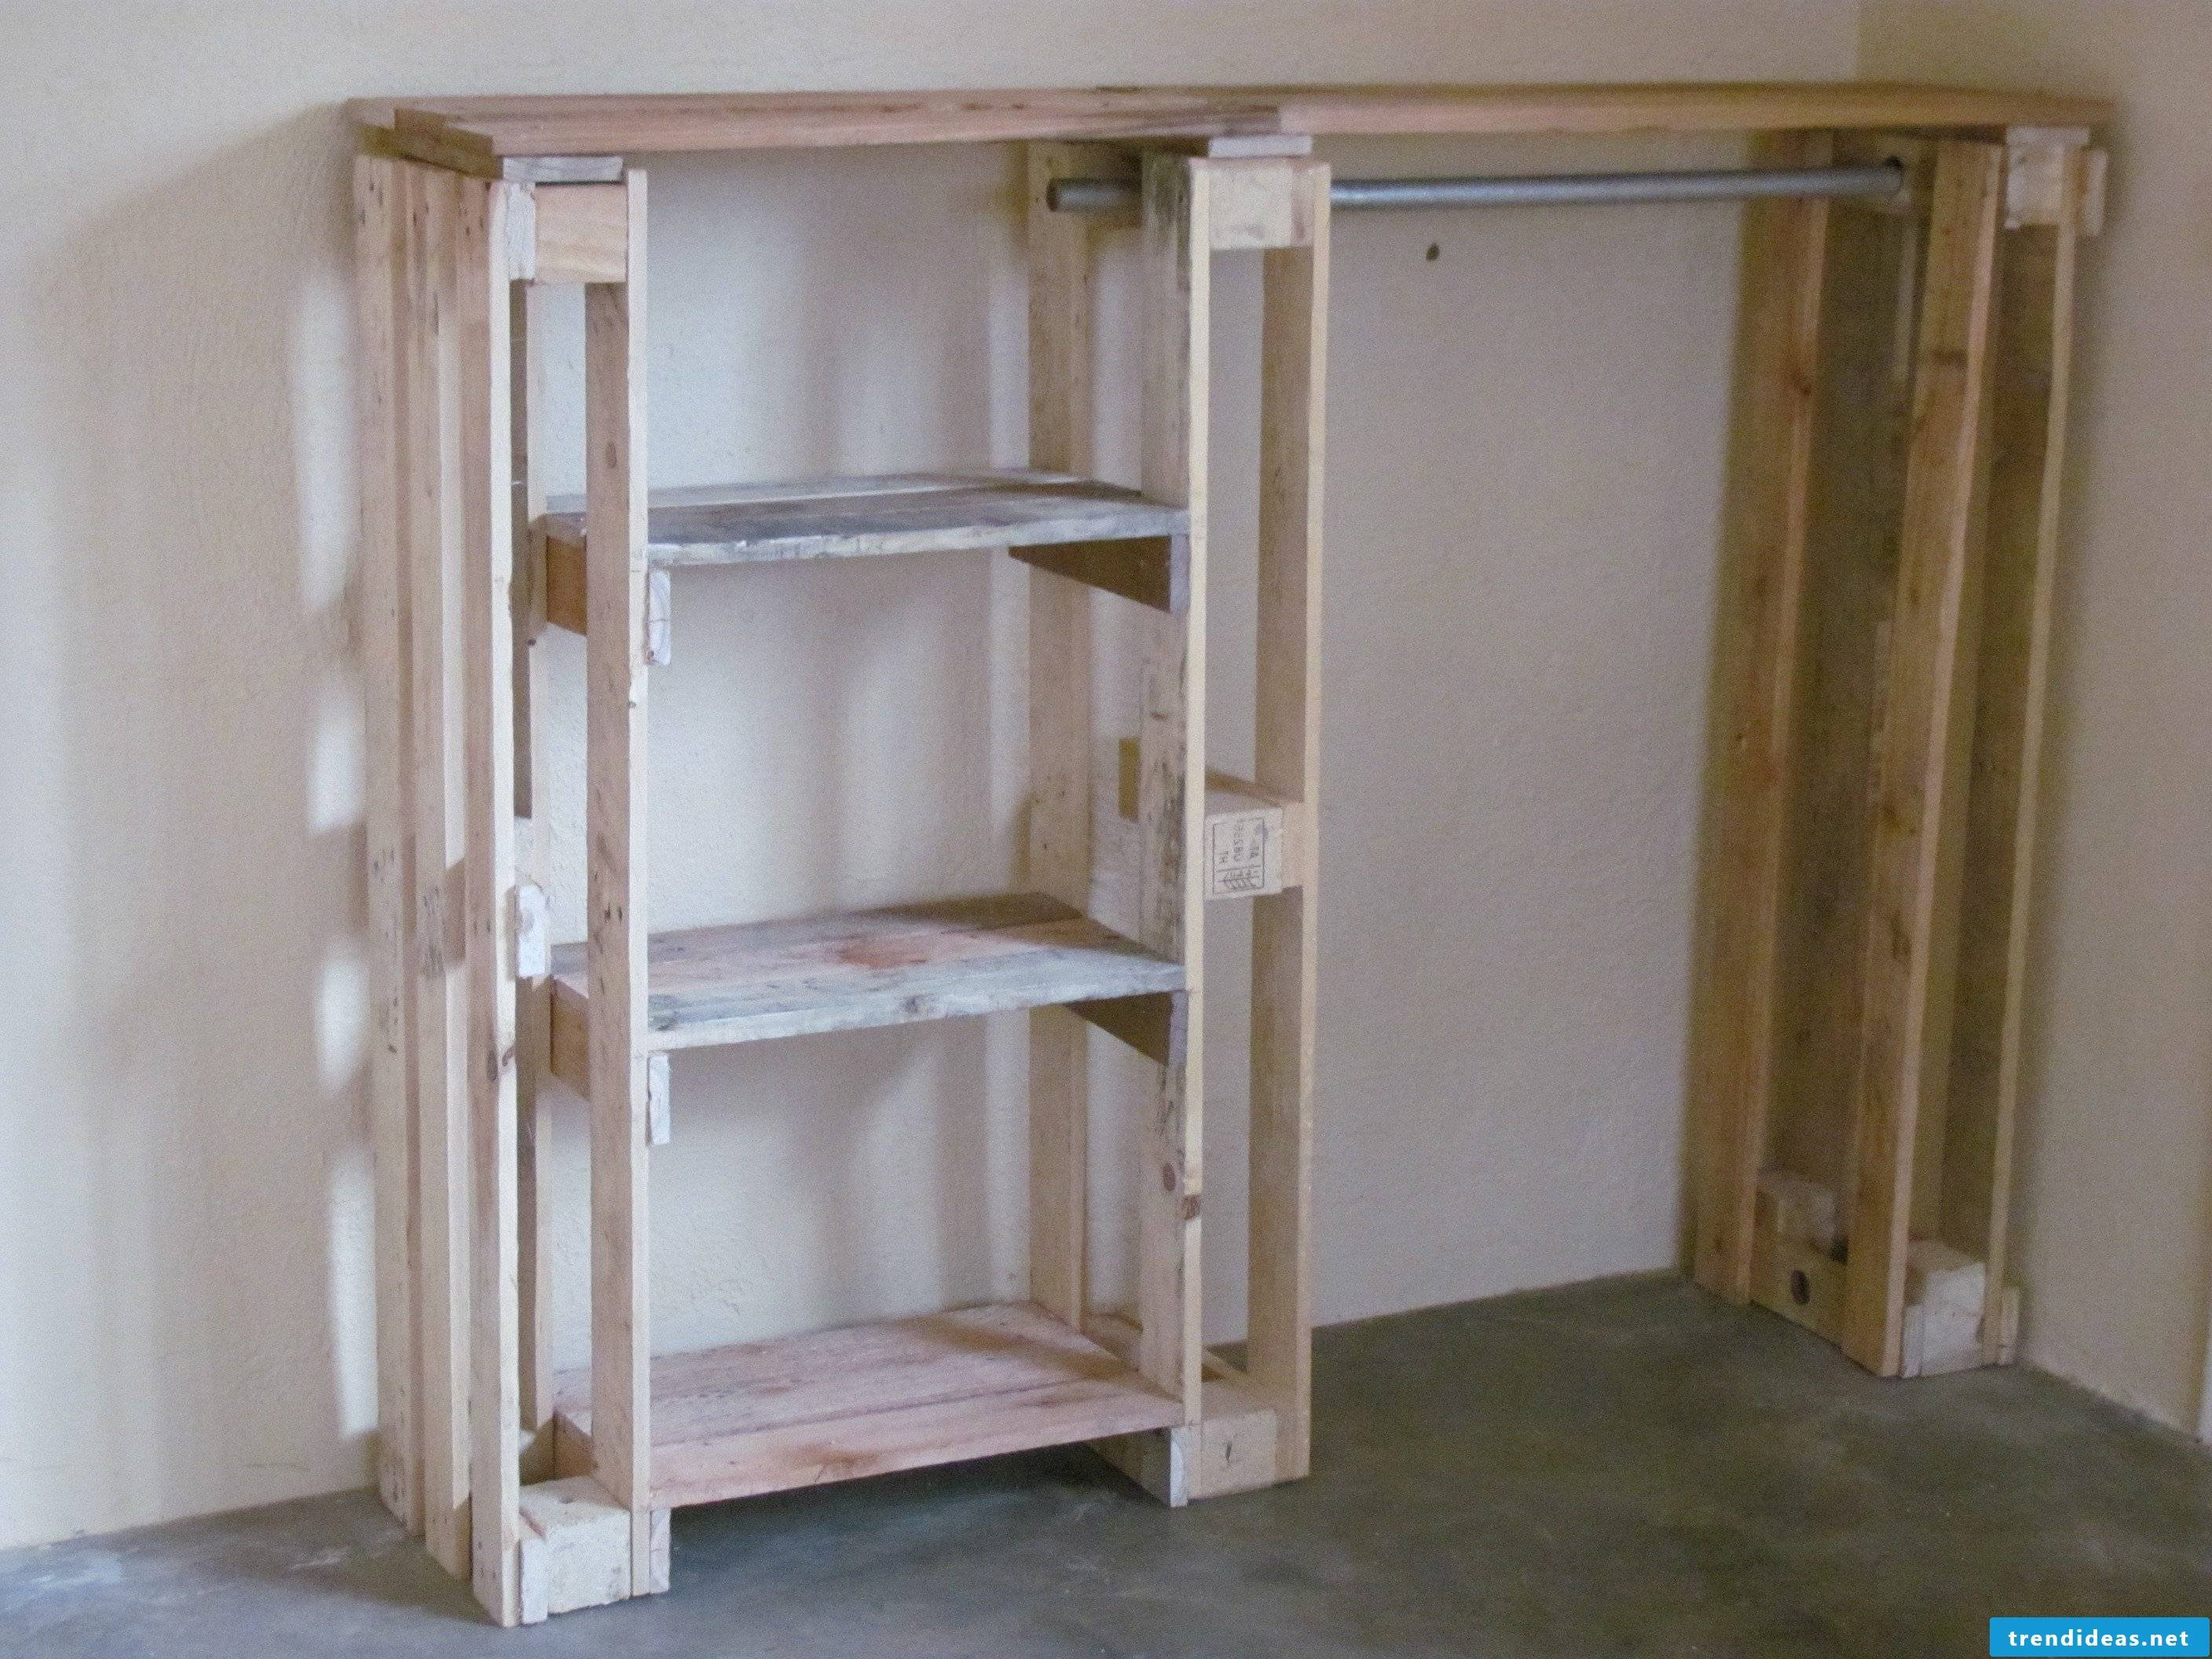 Build wardrobe from pallets yourself